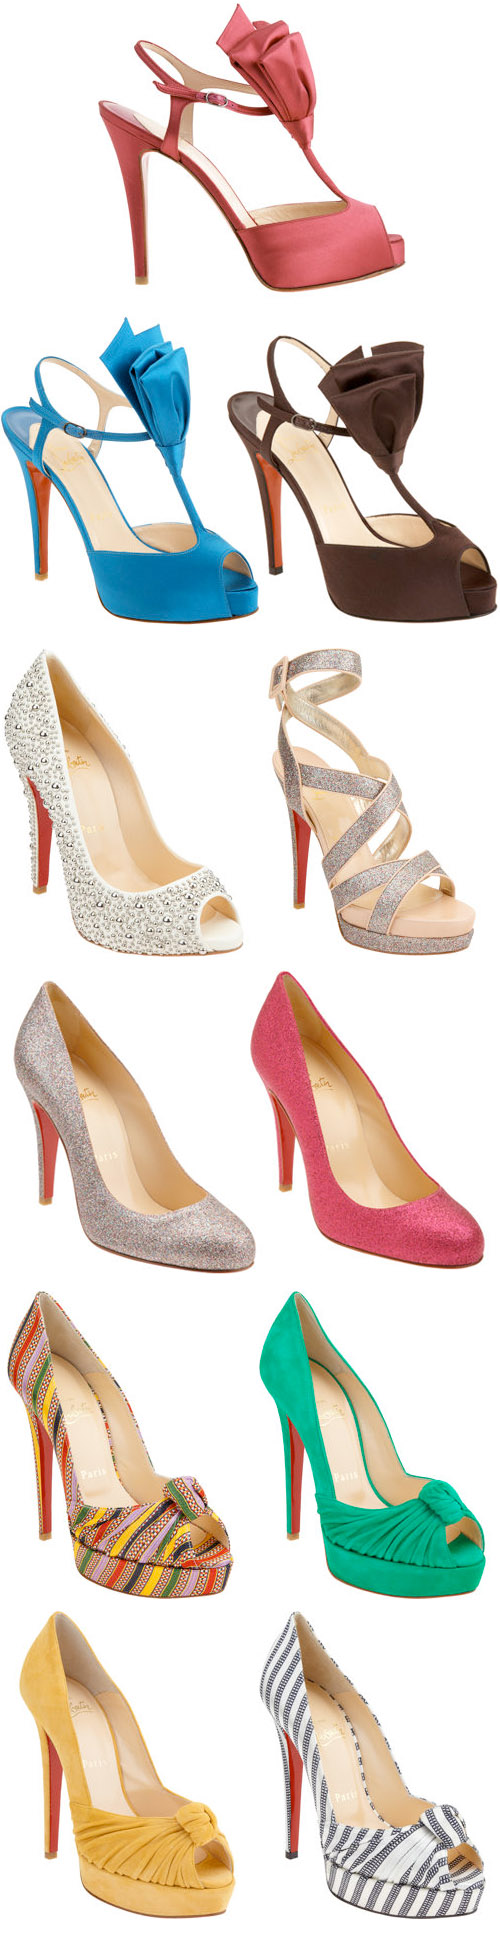 Christian Louboutin colorful spring wedding shoes, from Barneys.com